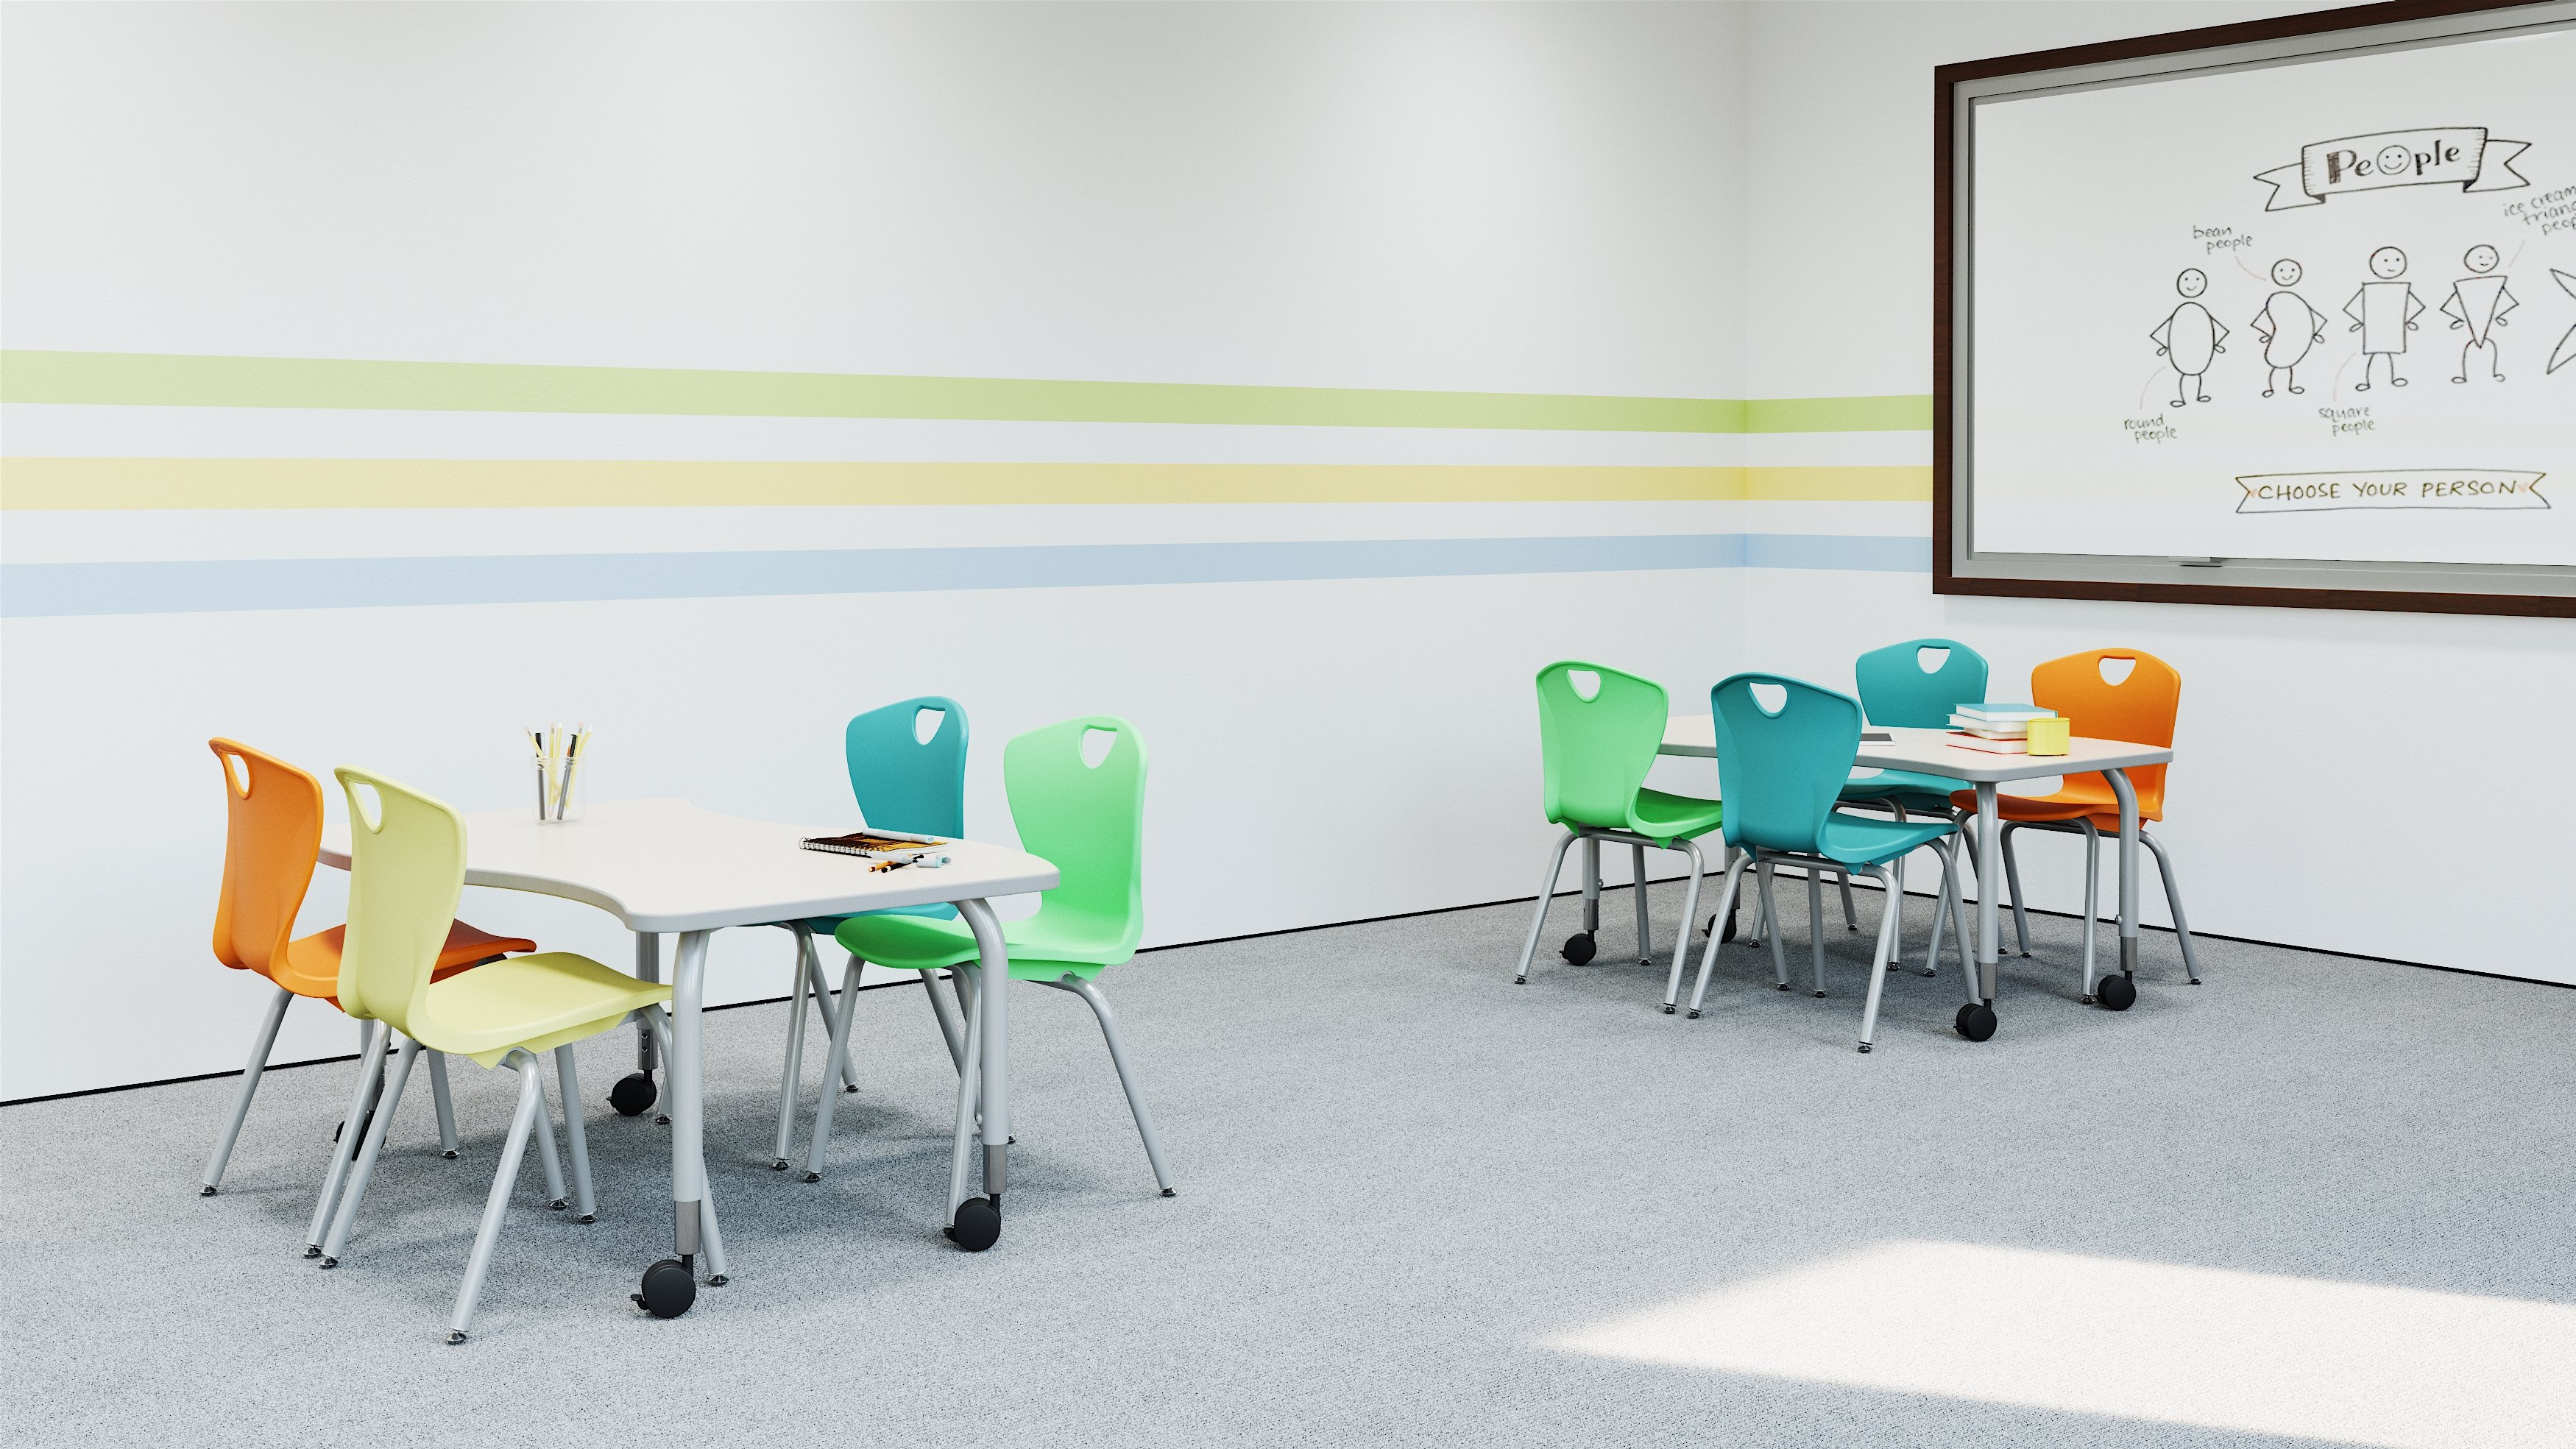 Childrens ministry, Elementary Classroom With Two Tables and Chairs